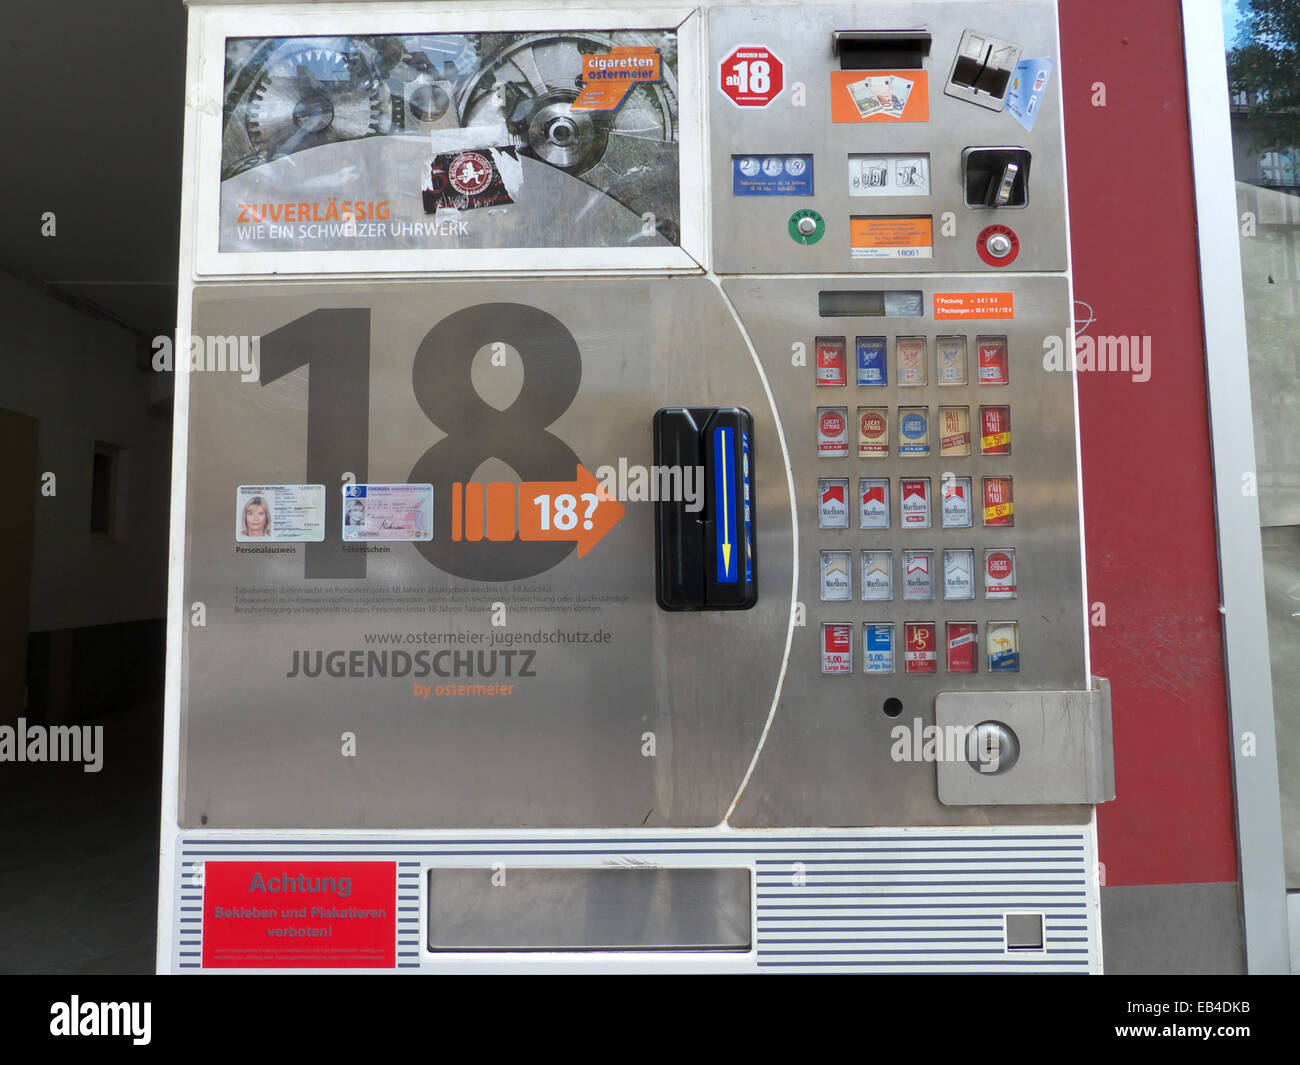 Cigarette Automatic Machine Sale Under 18 Years Old Is Forbidden ...